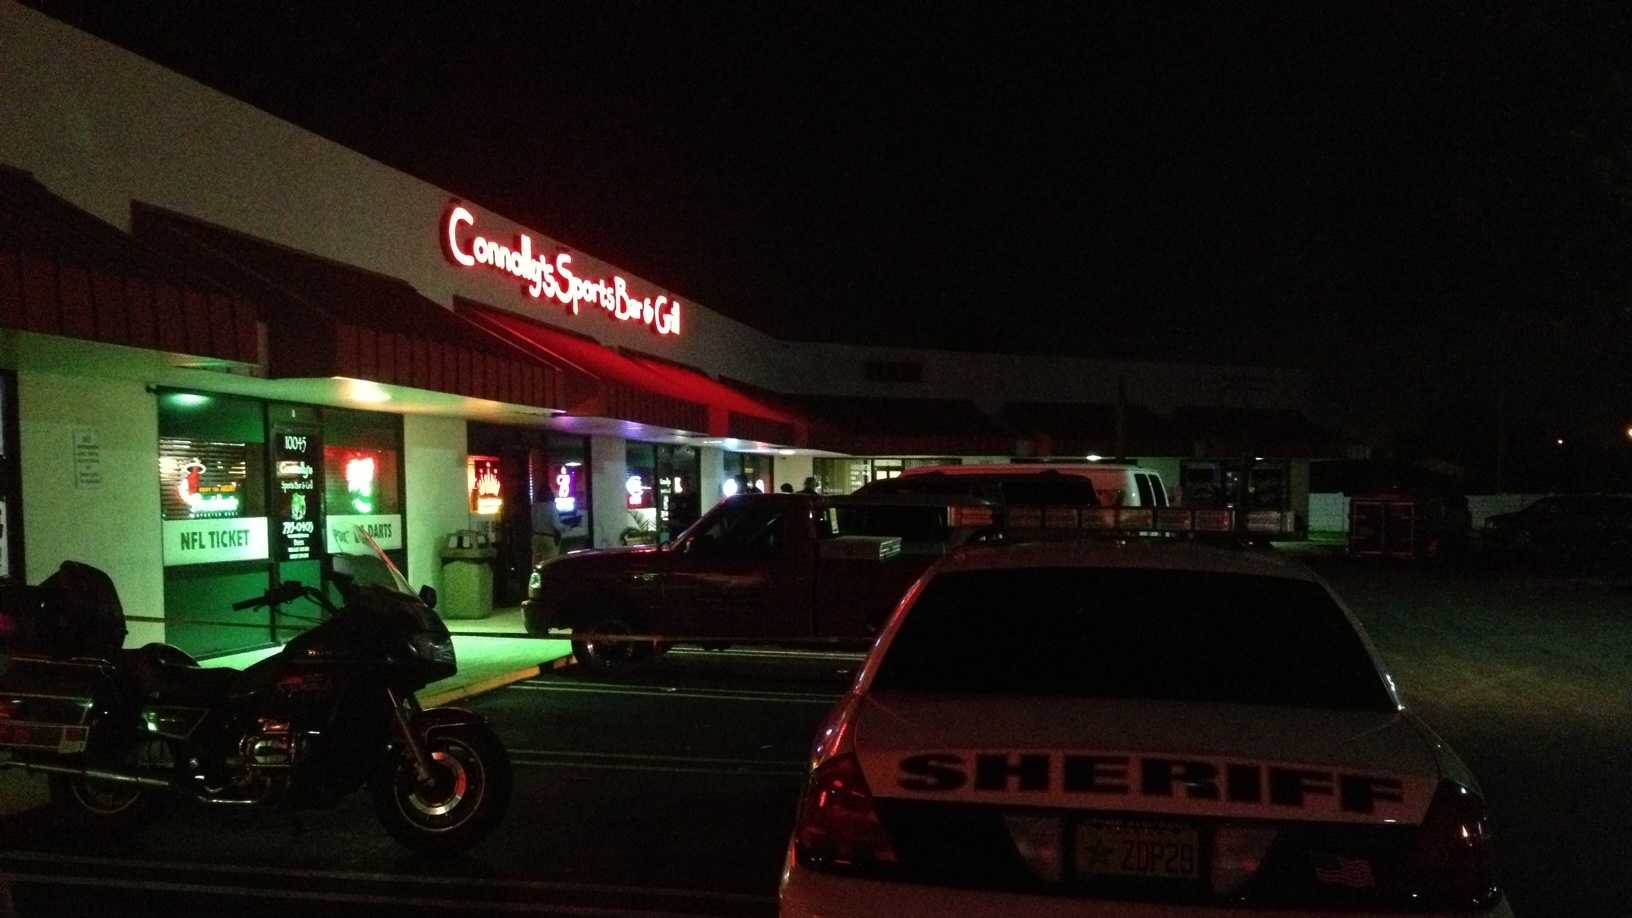 Four people were injured in a bar brawl at Connolly's Sports Bar & Grill in Royal Palm Beach.